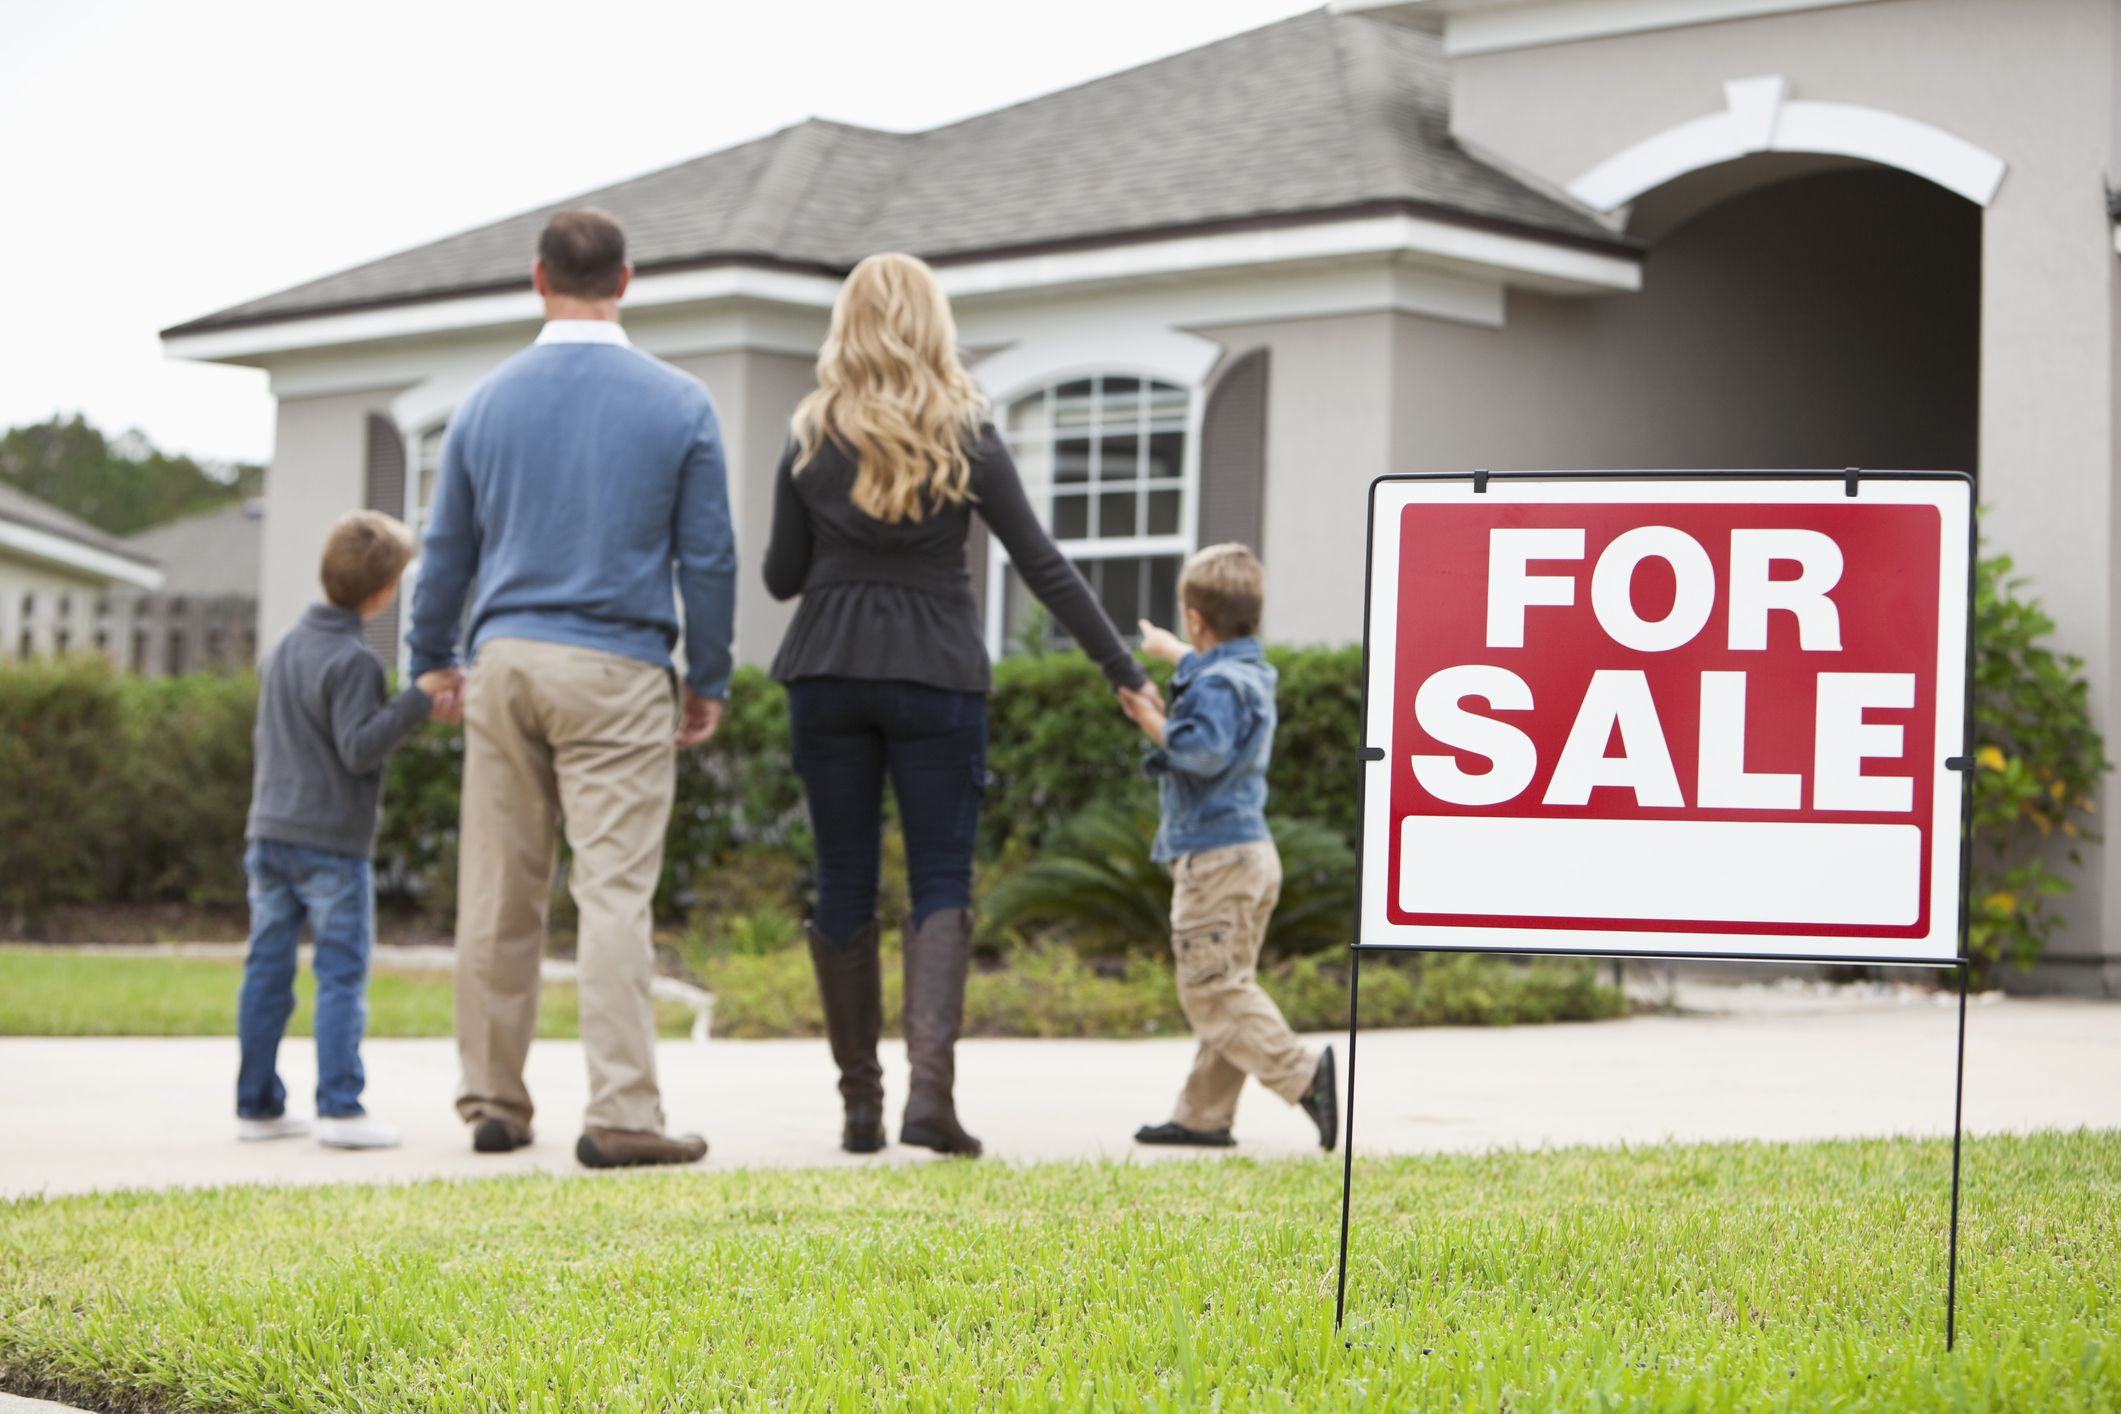 How To Make An Informed Property Decision